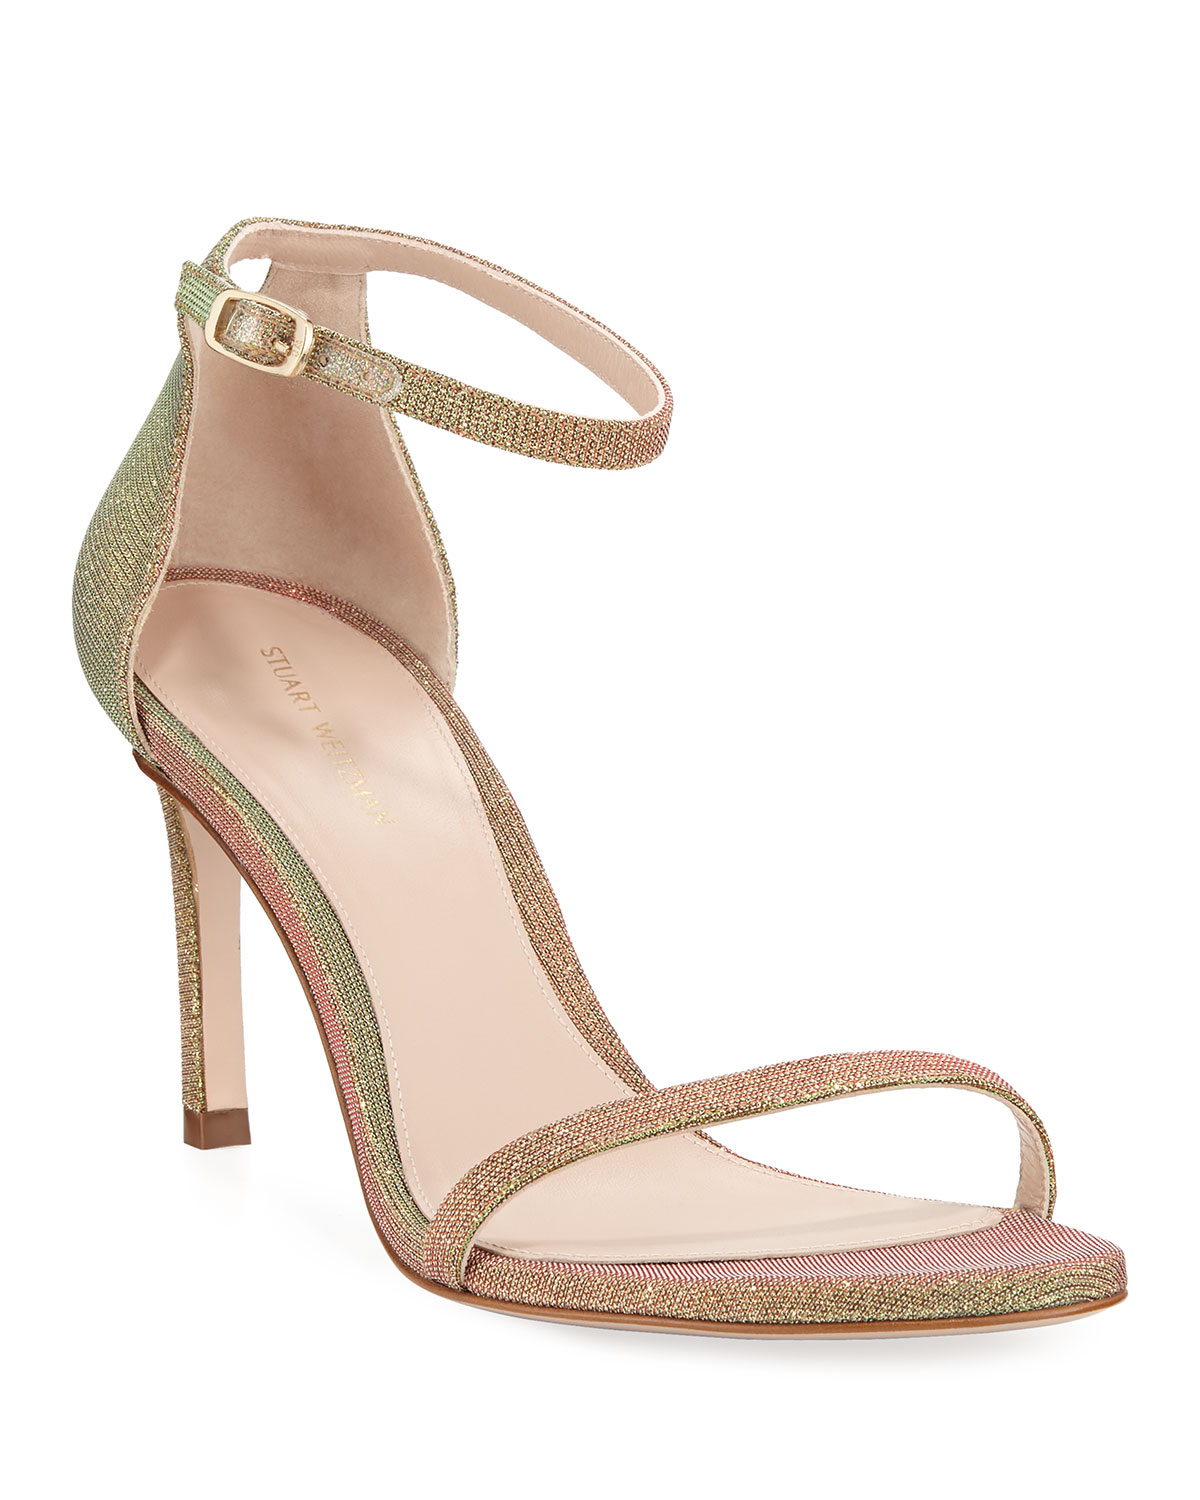 dbe6db2a Stuart Weitzman 75NUDISTTRADITIONAL Night Time Naked Sandals ...